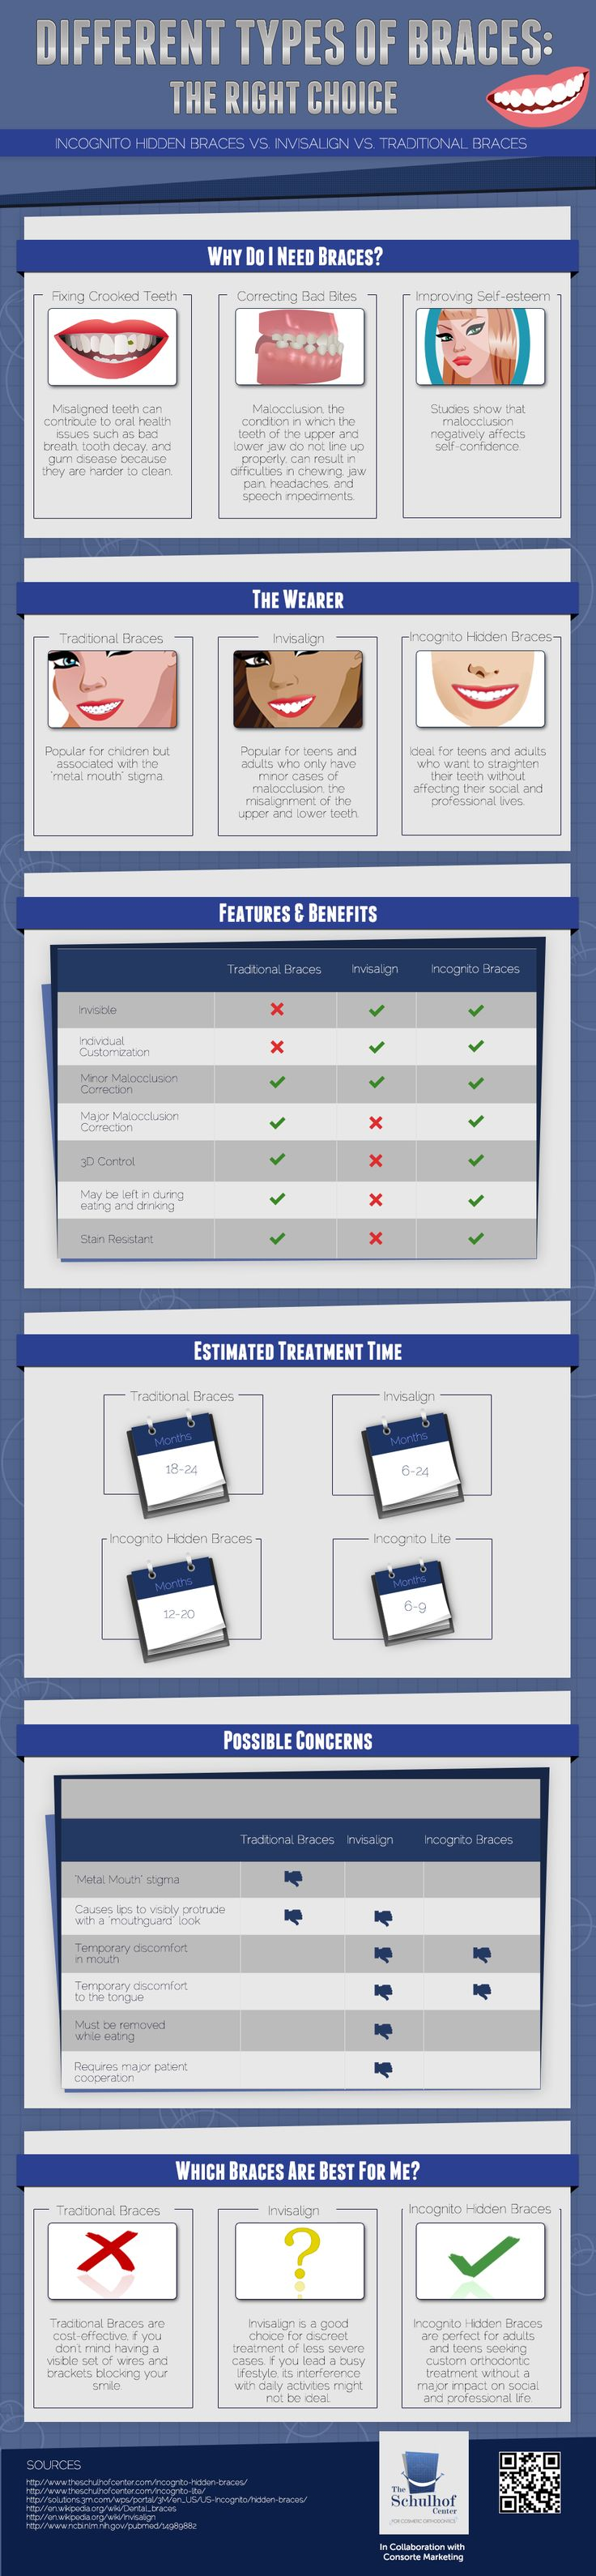 The different types of braces. #braces #Theschulhofcenter #infographic